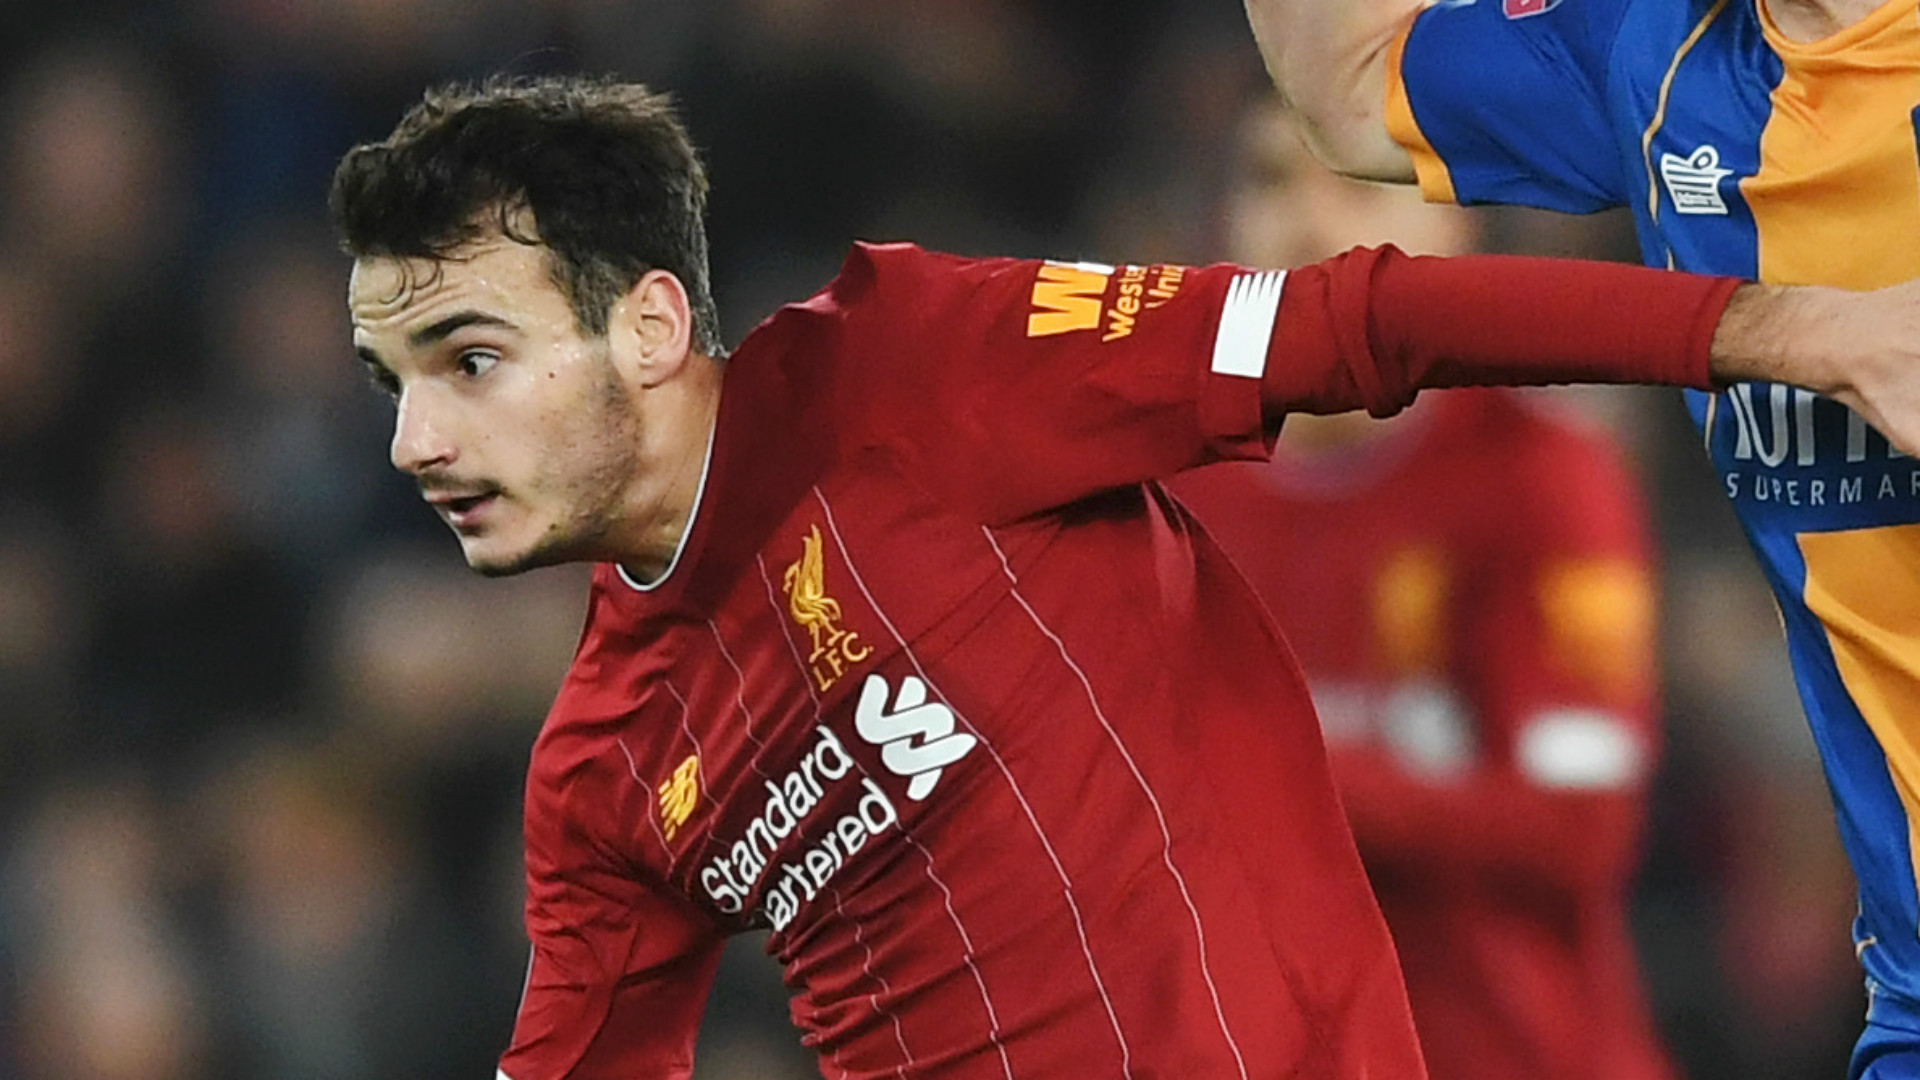 Chirivella unsure what Liverpool future holds as contract with 'best team in Europe' runs down